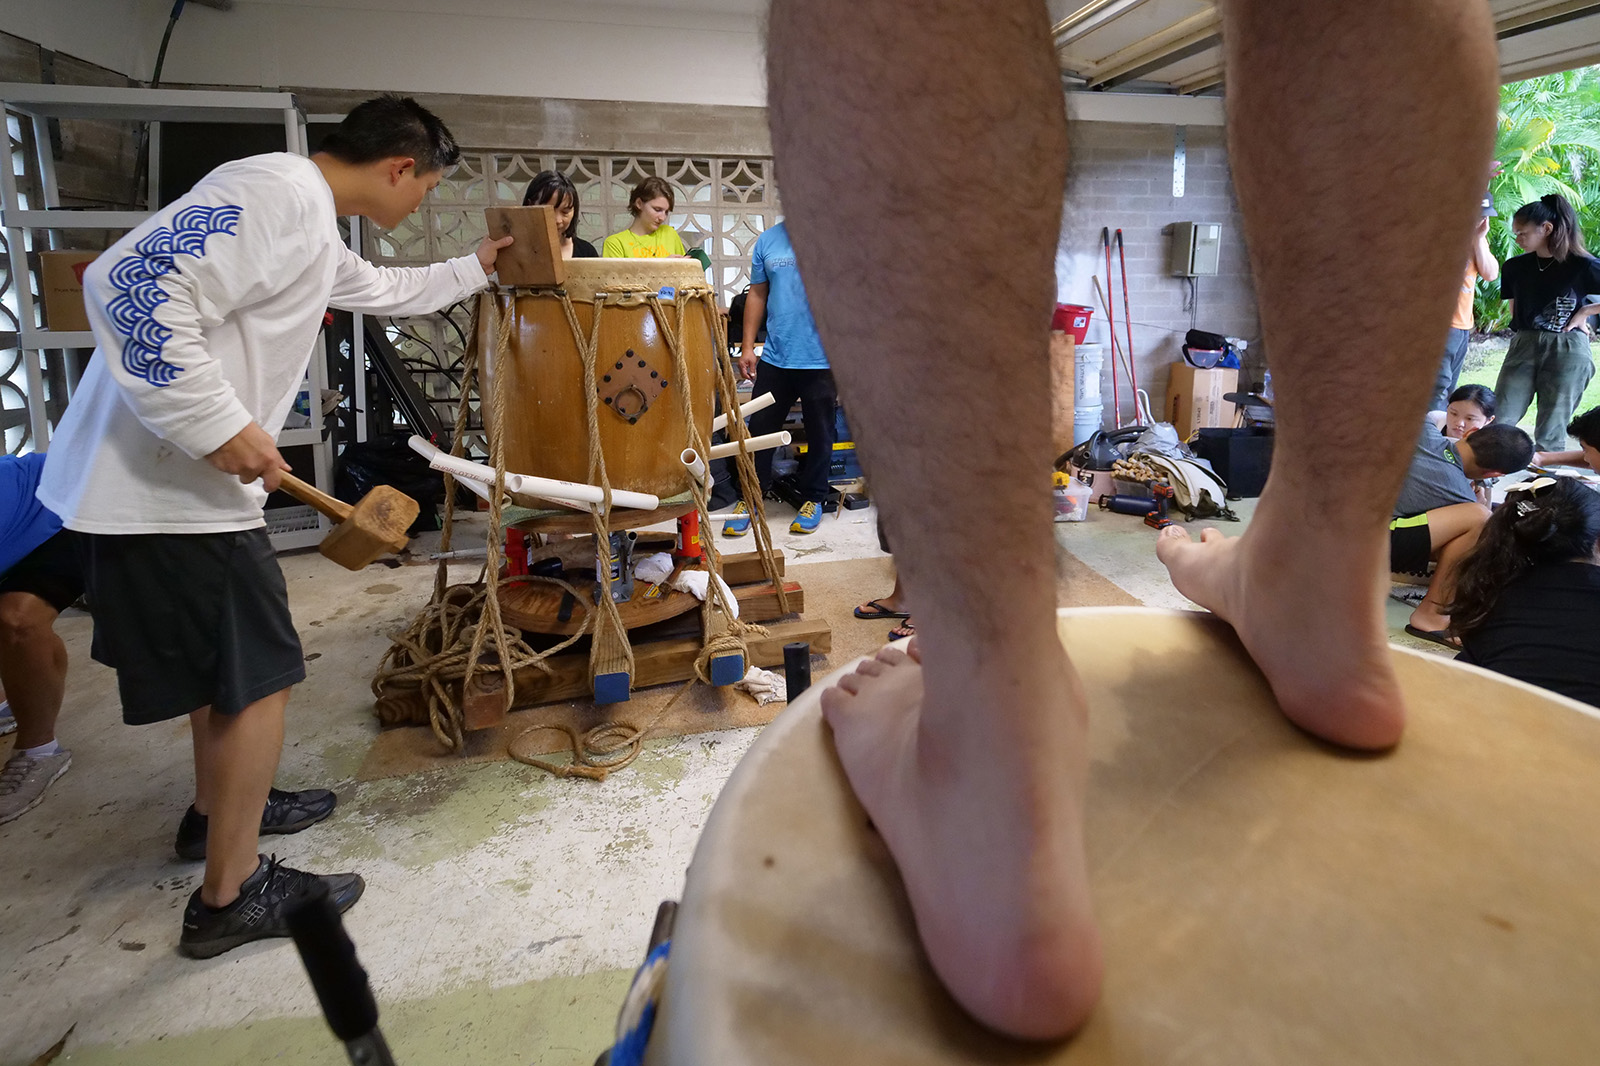 <p>A taiko community member walks atop a drum to massage and loosen the skin further as it is stretched into place as Eric Chang works on stretching the skin of another drum by pounding the edges down.</p>